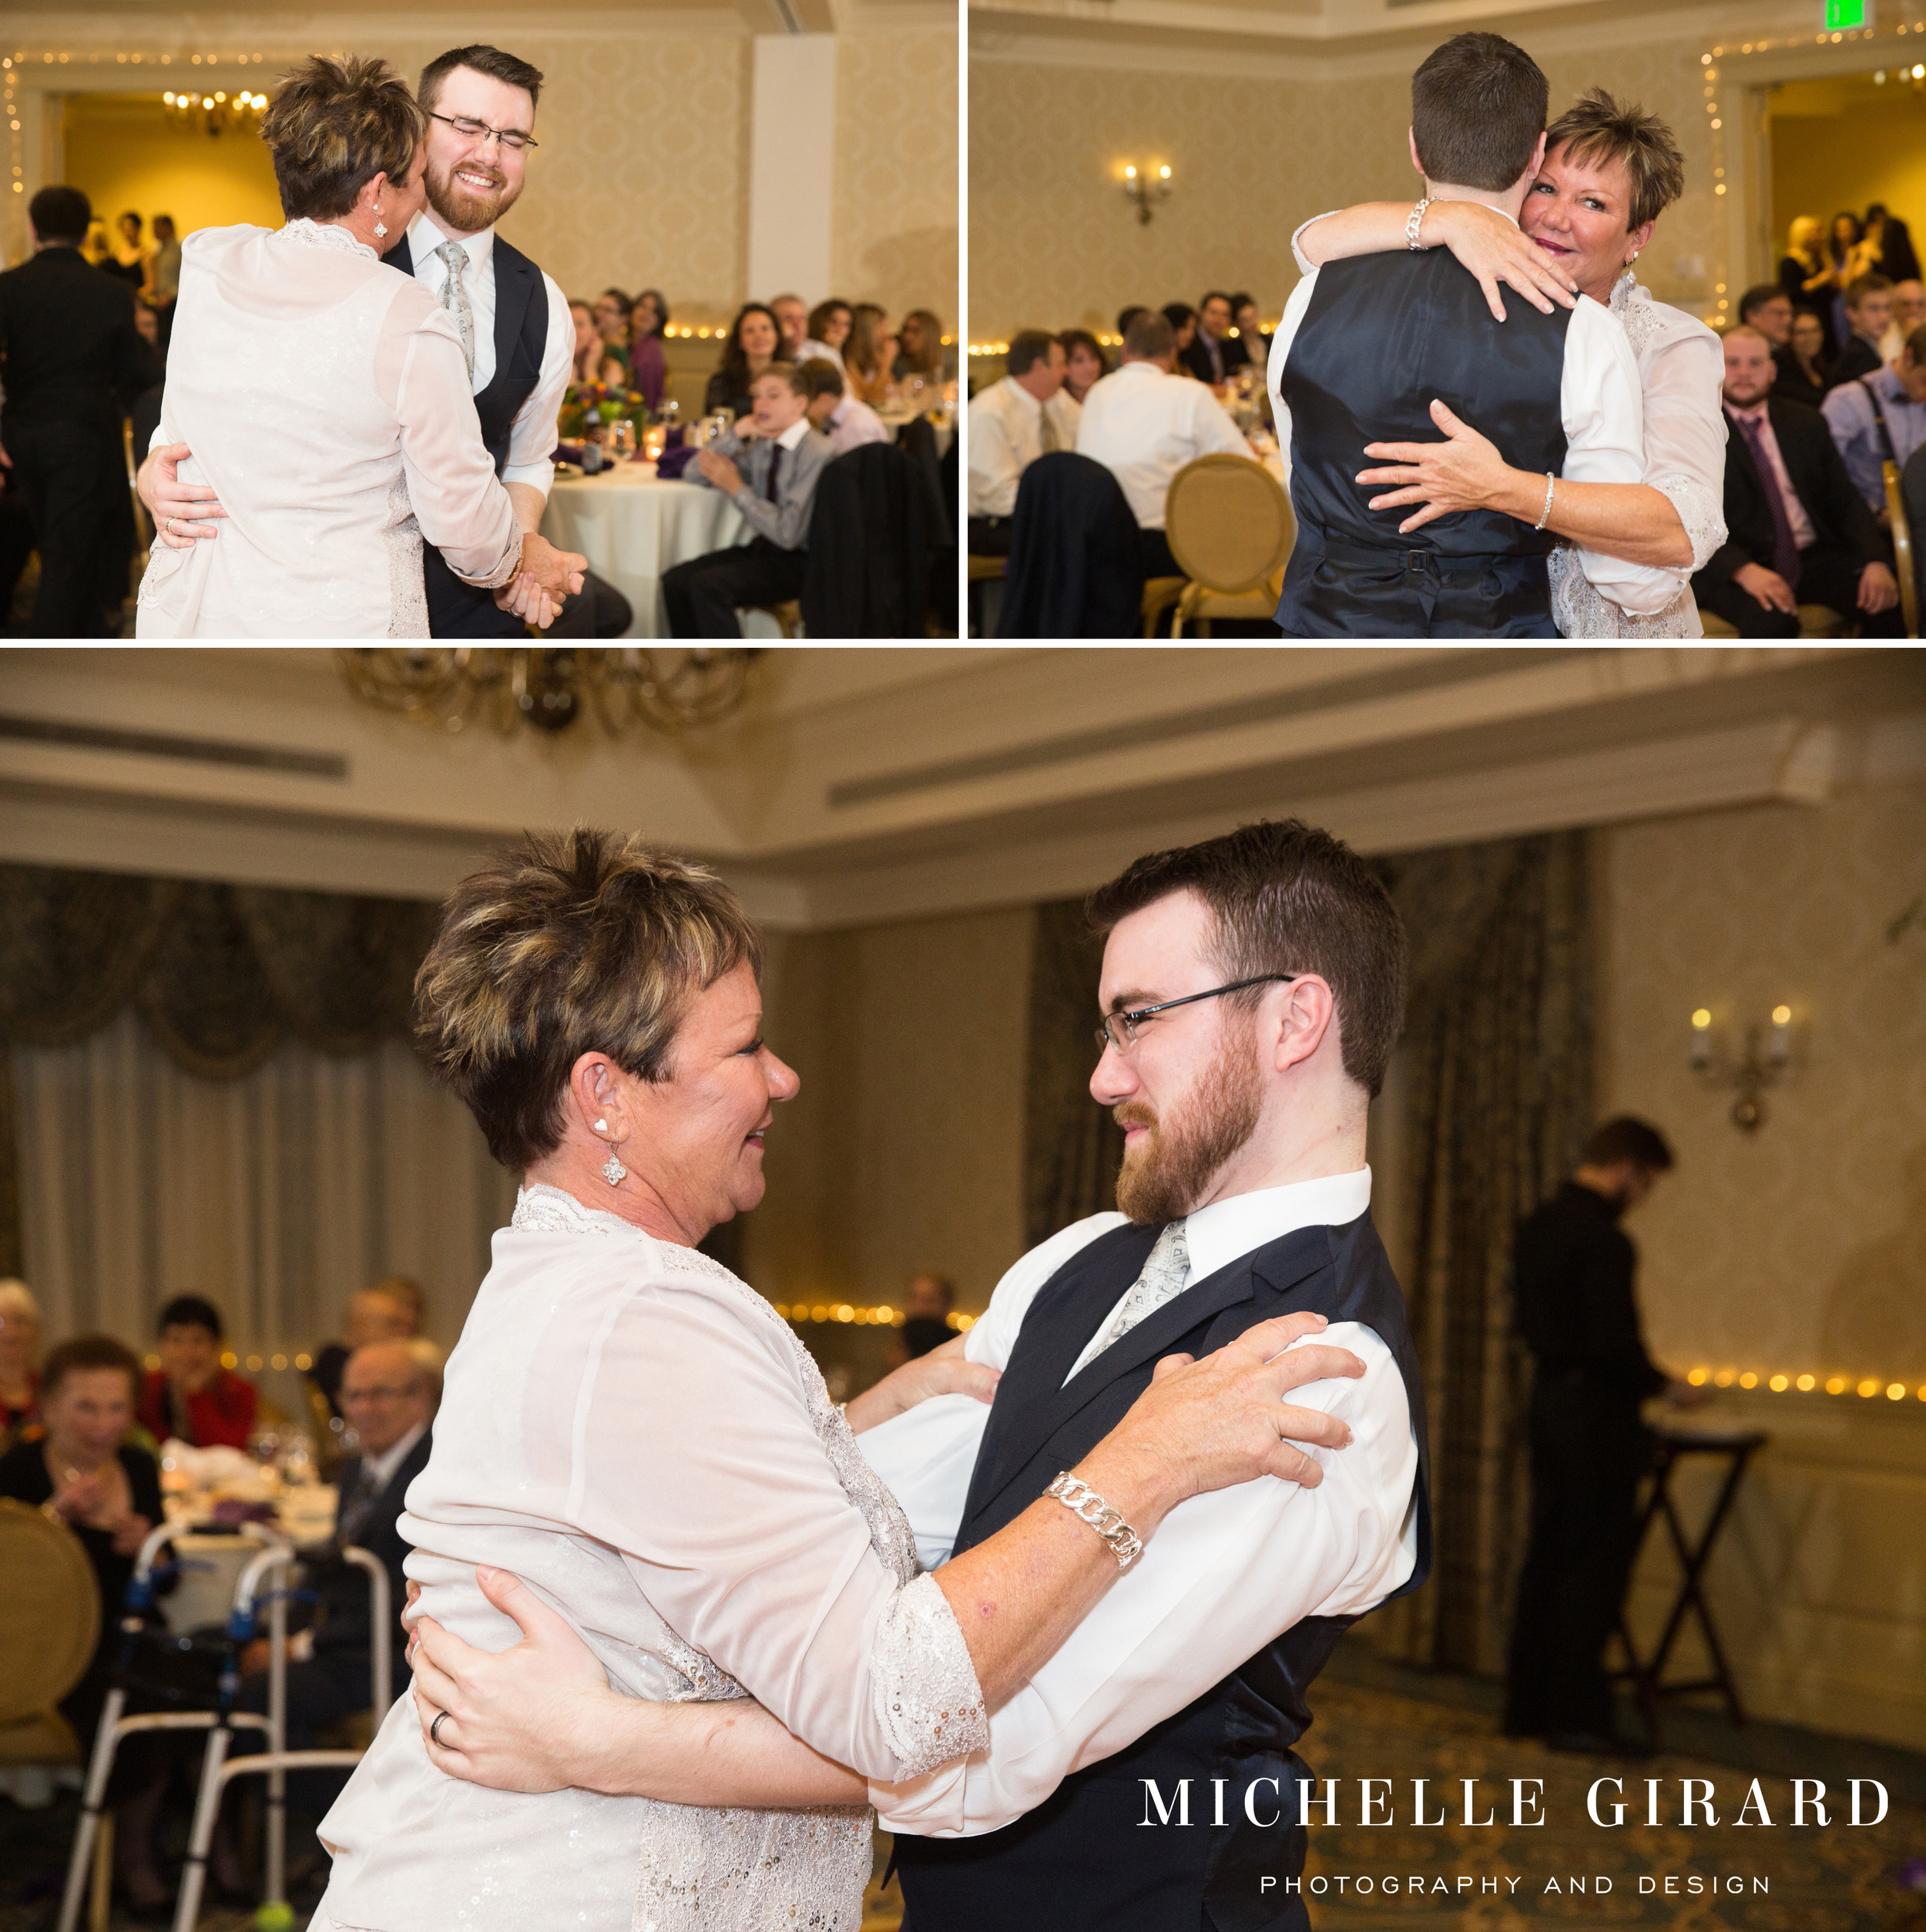 LordJefferyInnWedding_AmherstMa_MichelleGirardPhotography49.jpg